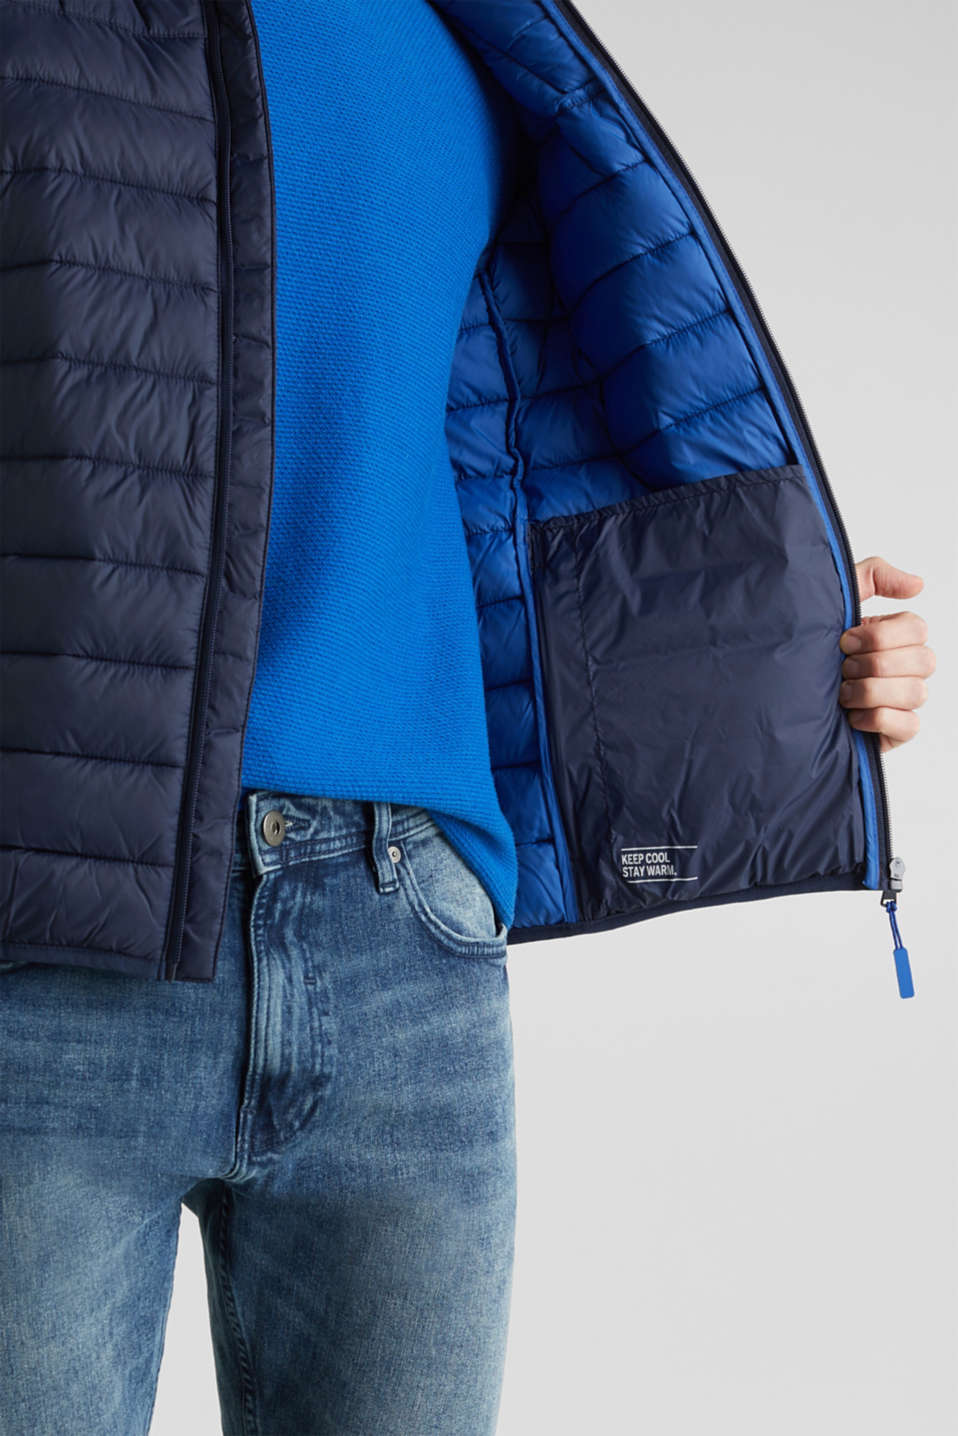 Jackets outdoor woven, DARK BLUE, detail image number 7